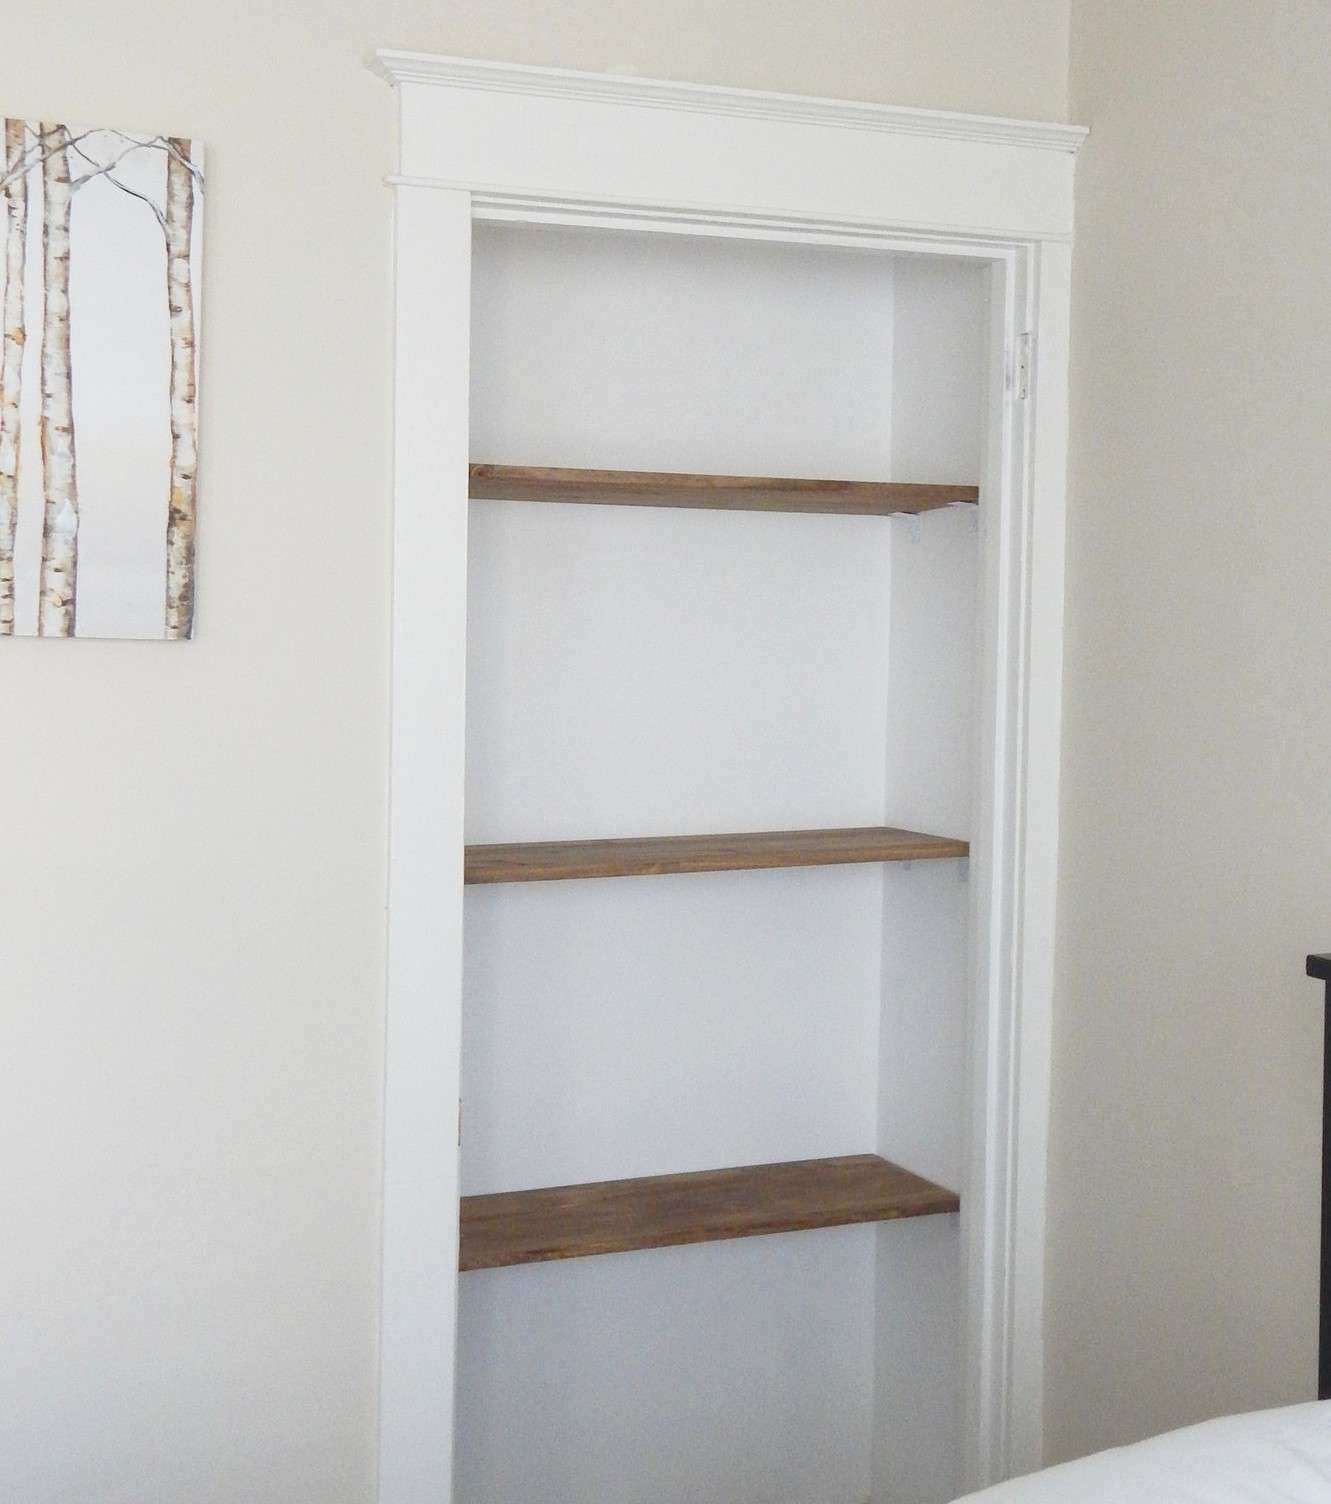 Hanging Pictures On Plaster Walls Awesome Small Closet Be Es A Bookcase & Tips for Hanging Heavy Things On